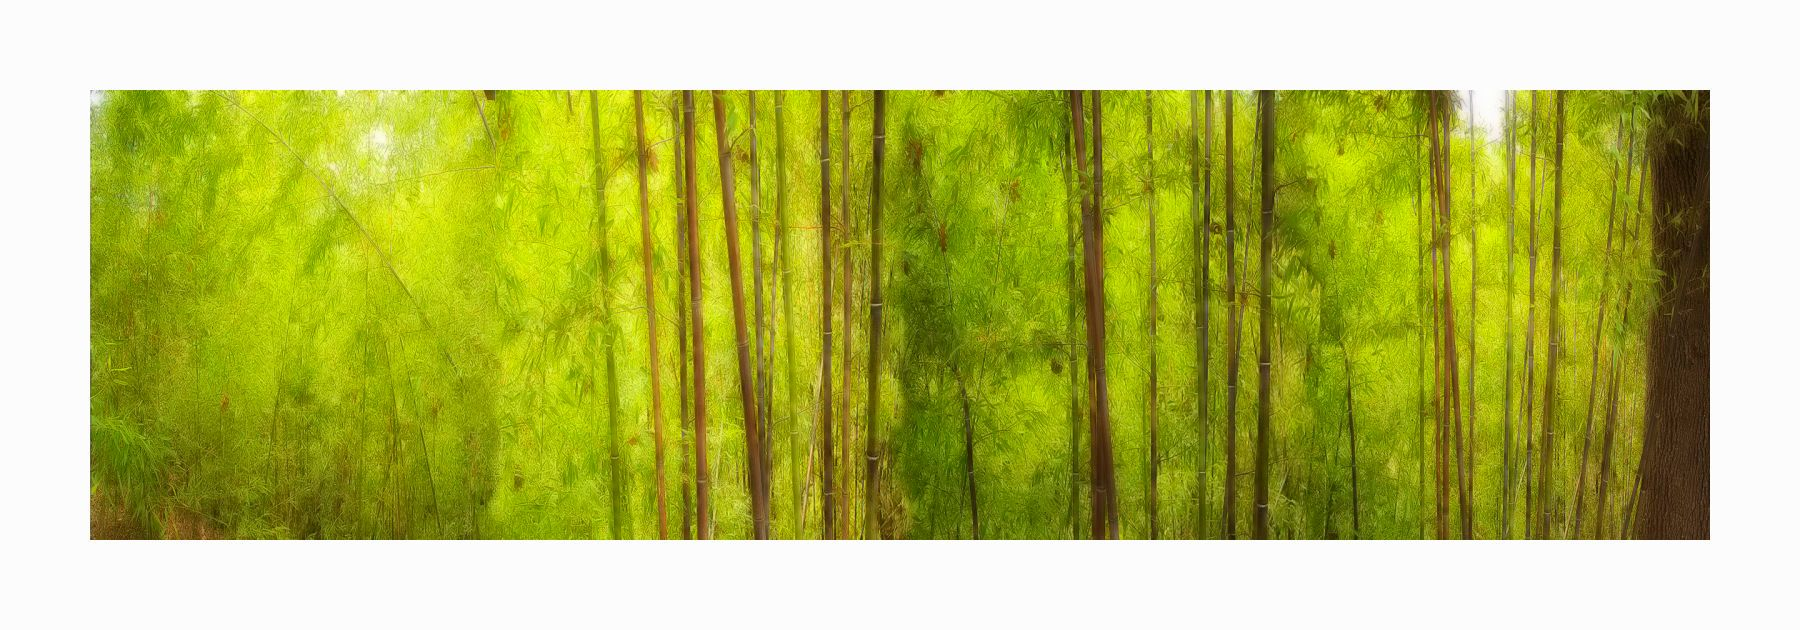 1bamboo_trees_40x14_border_color_2581